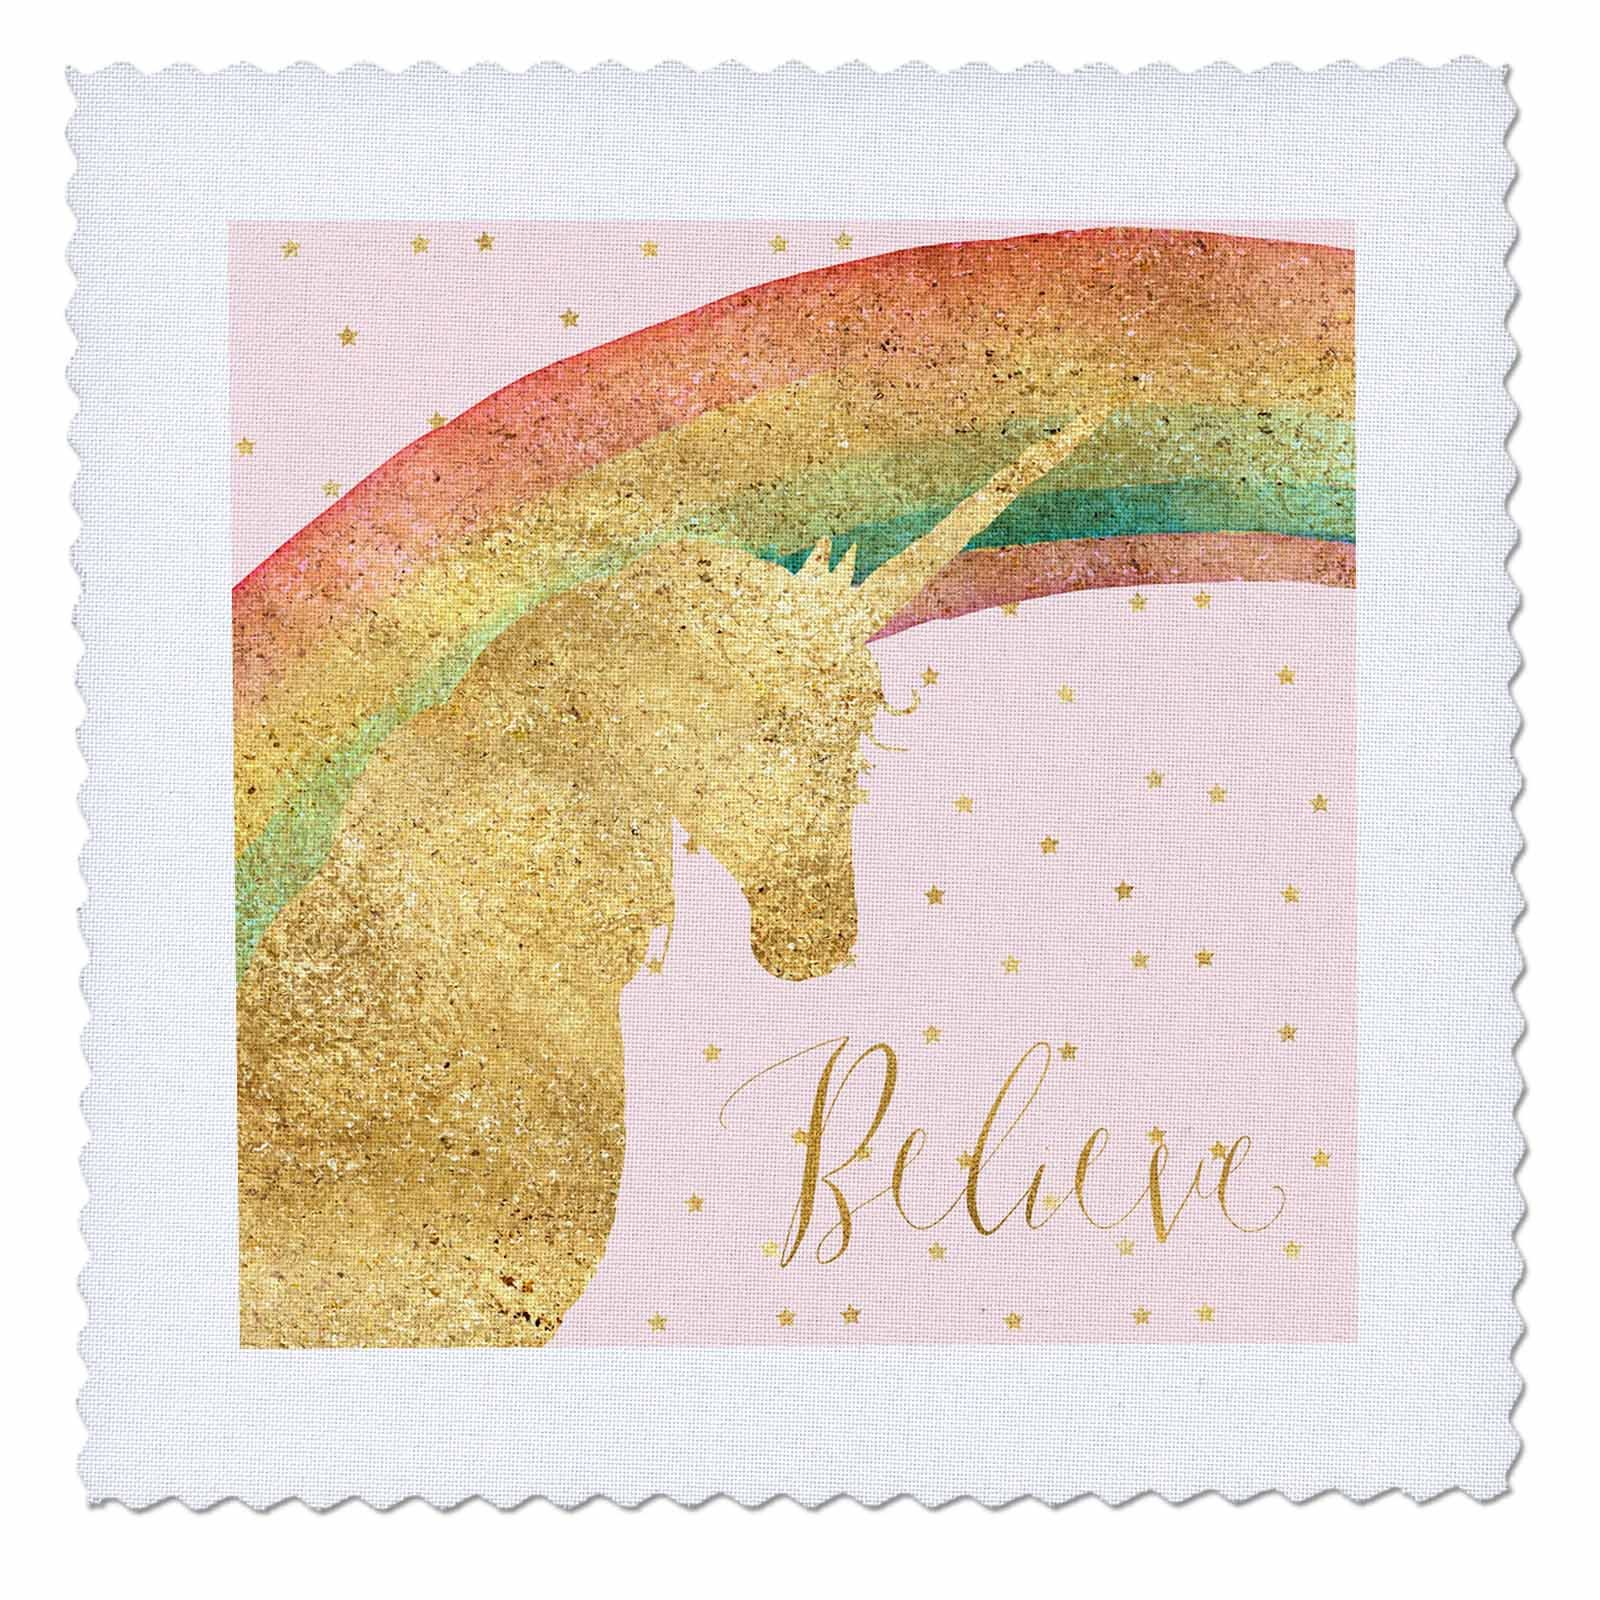 3dRose PS Animals - Image of Gold Pink Stars Unicorn Rainbow Believe - 16x16 inch quilt square (qs_280670_6)